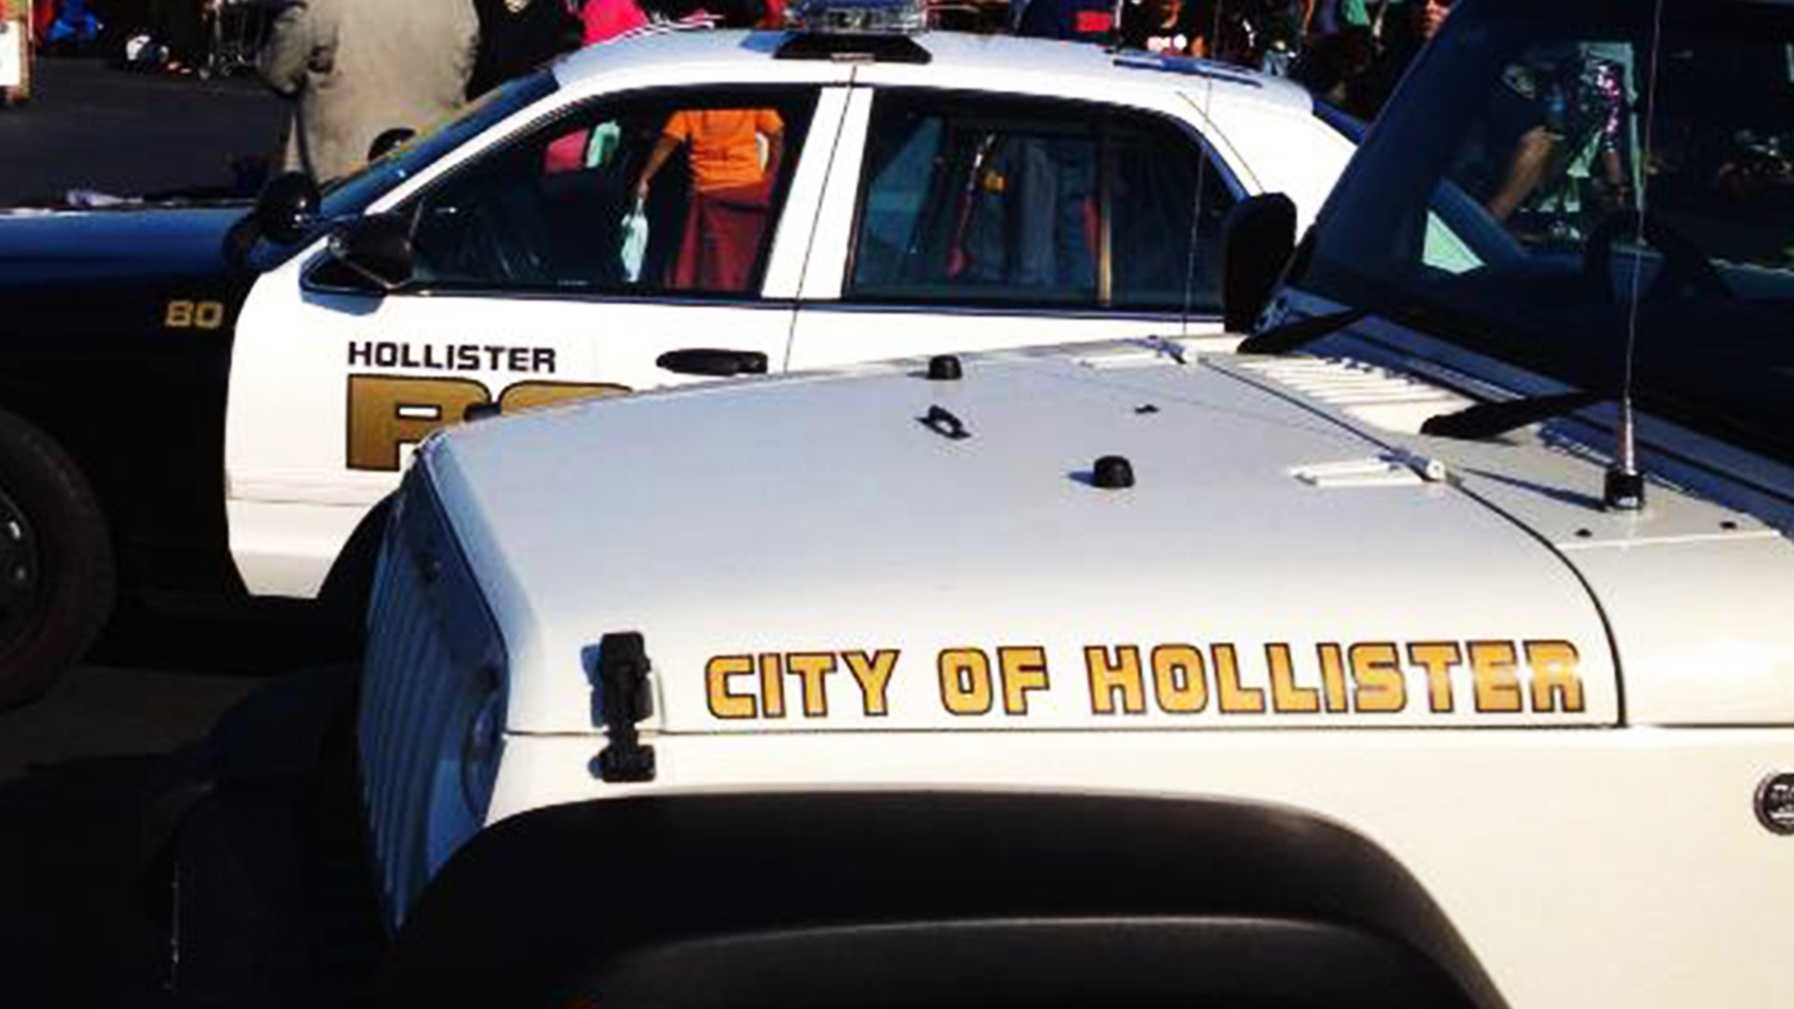 hollister cops.jpg